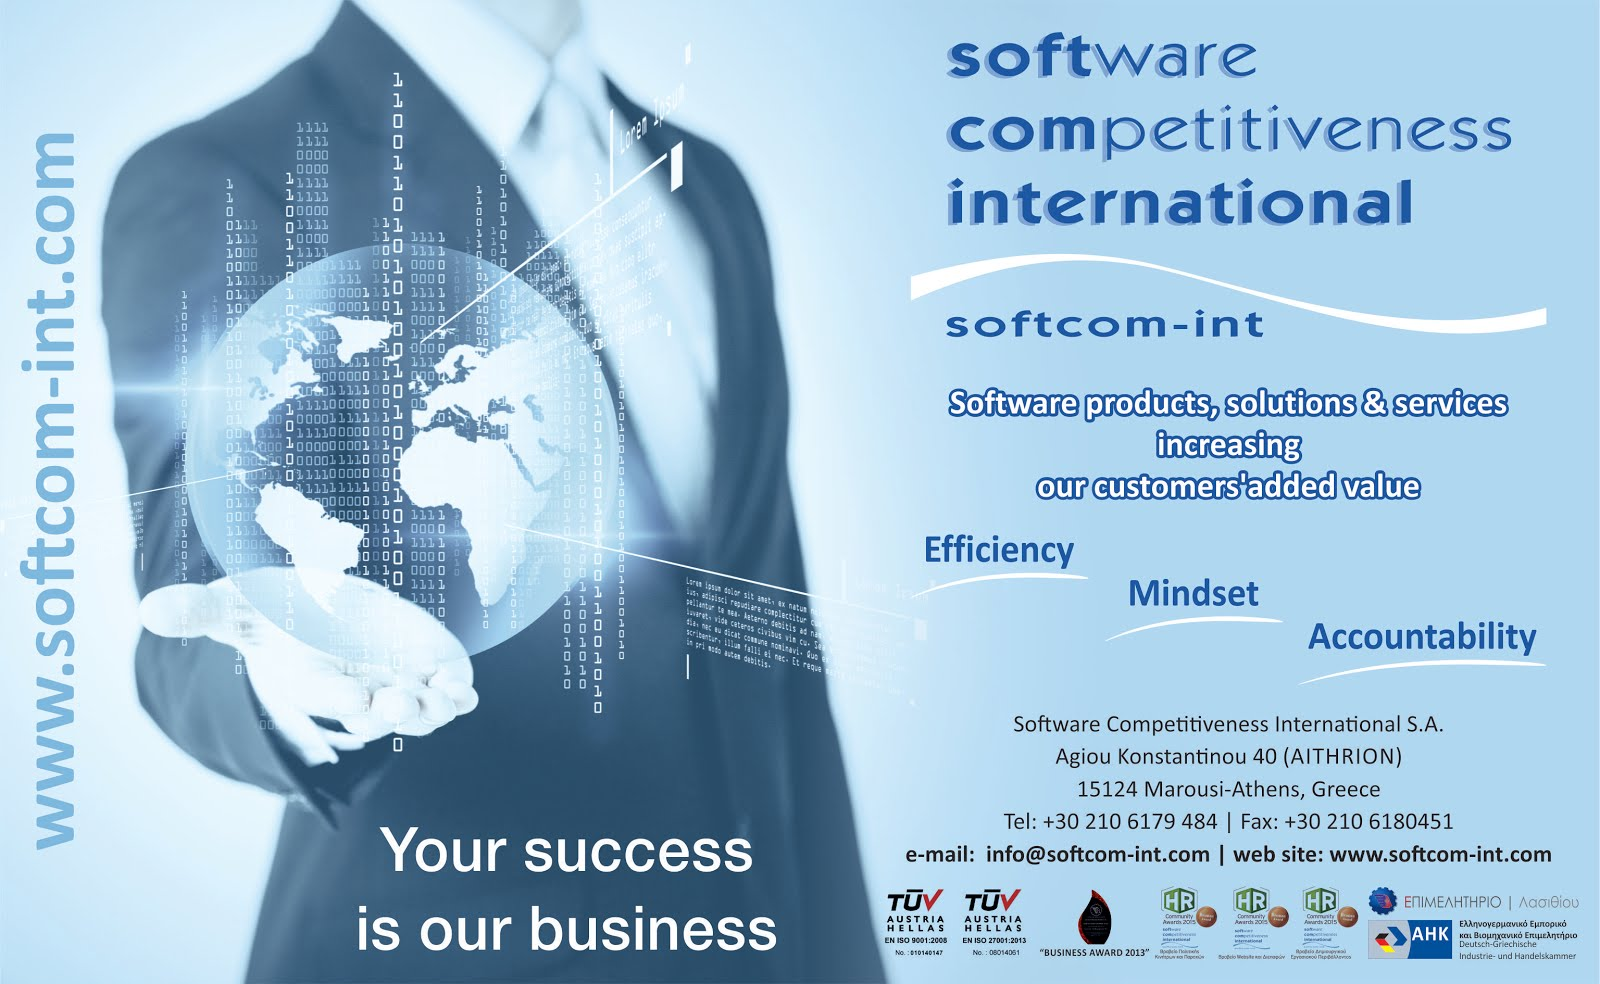 Software Competitiveness International